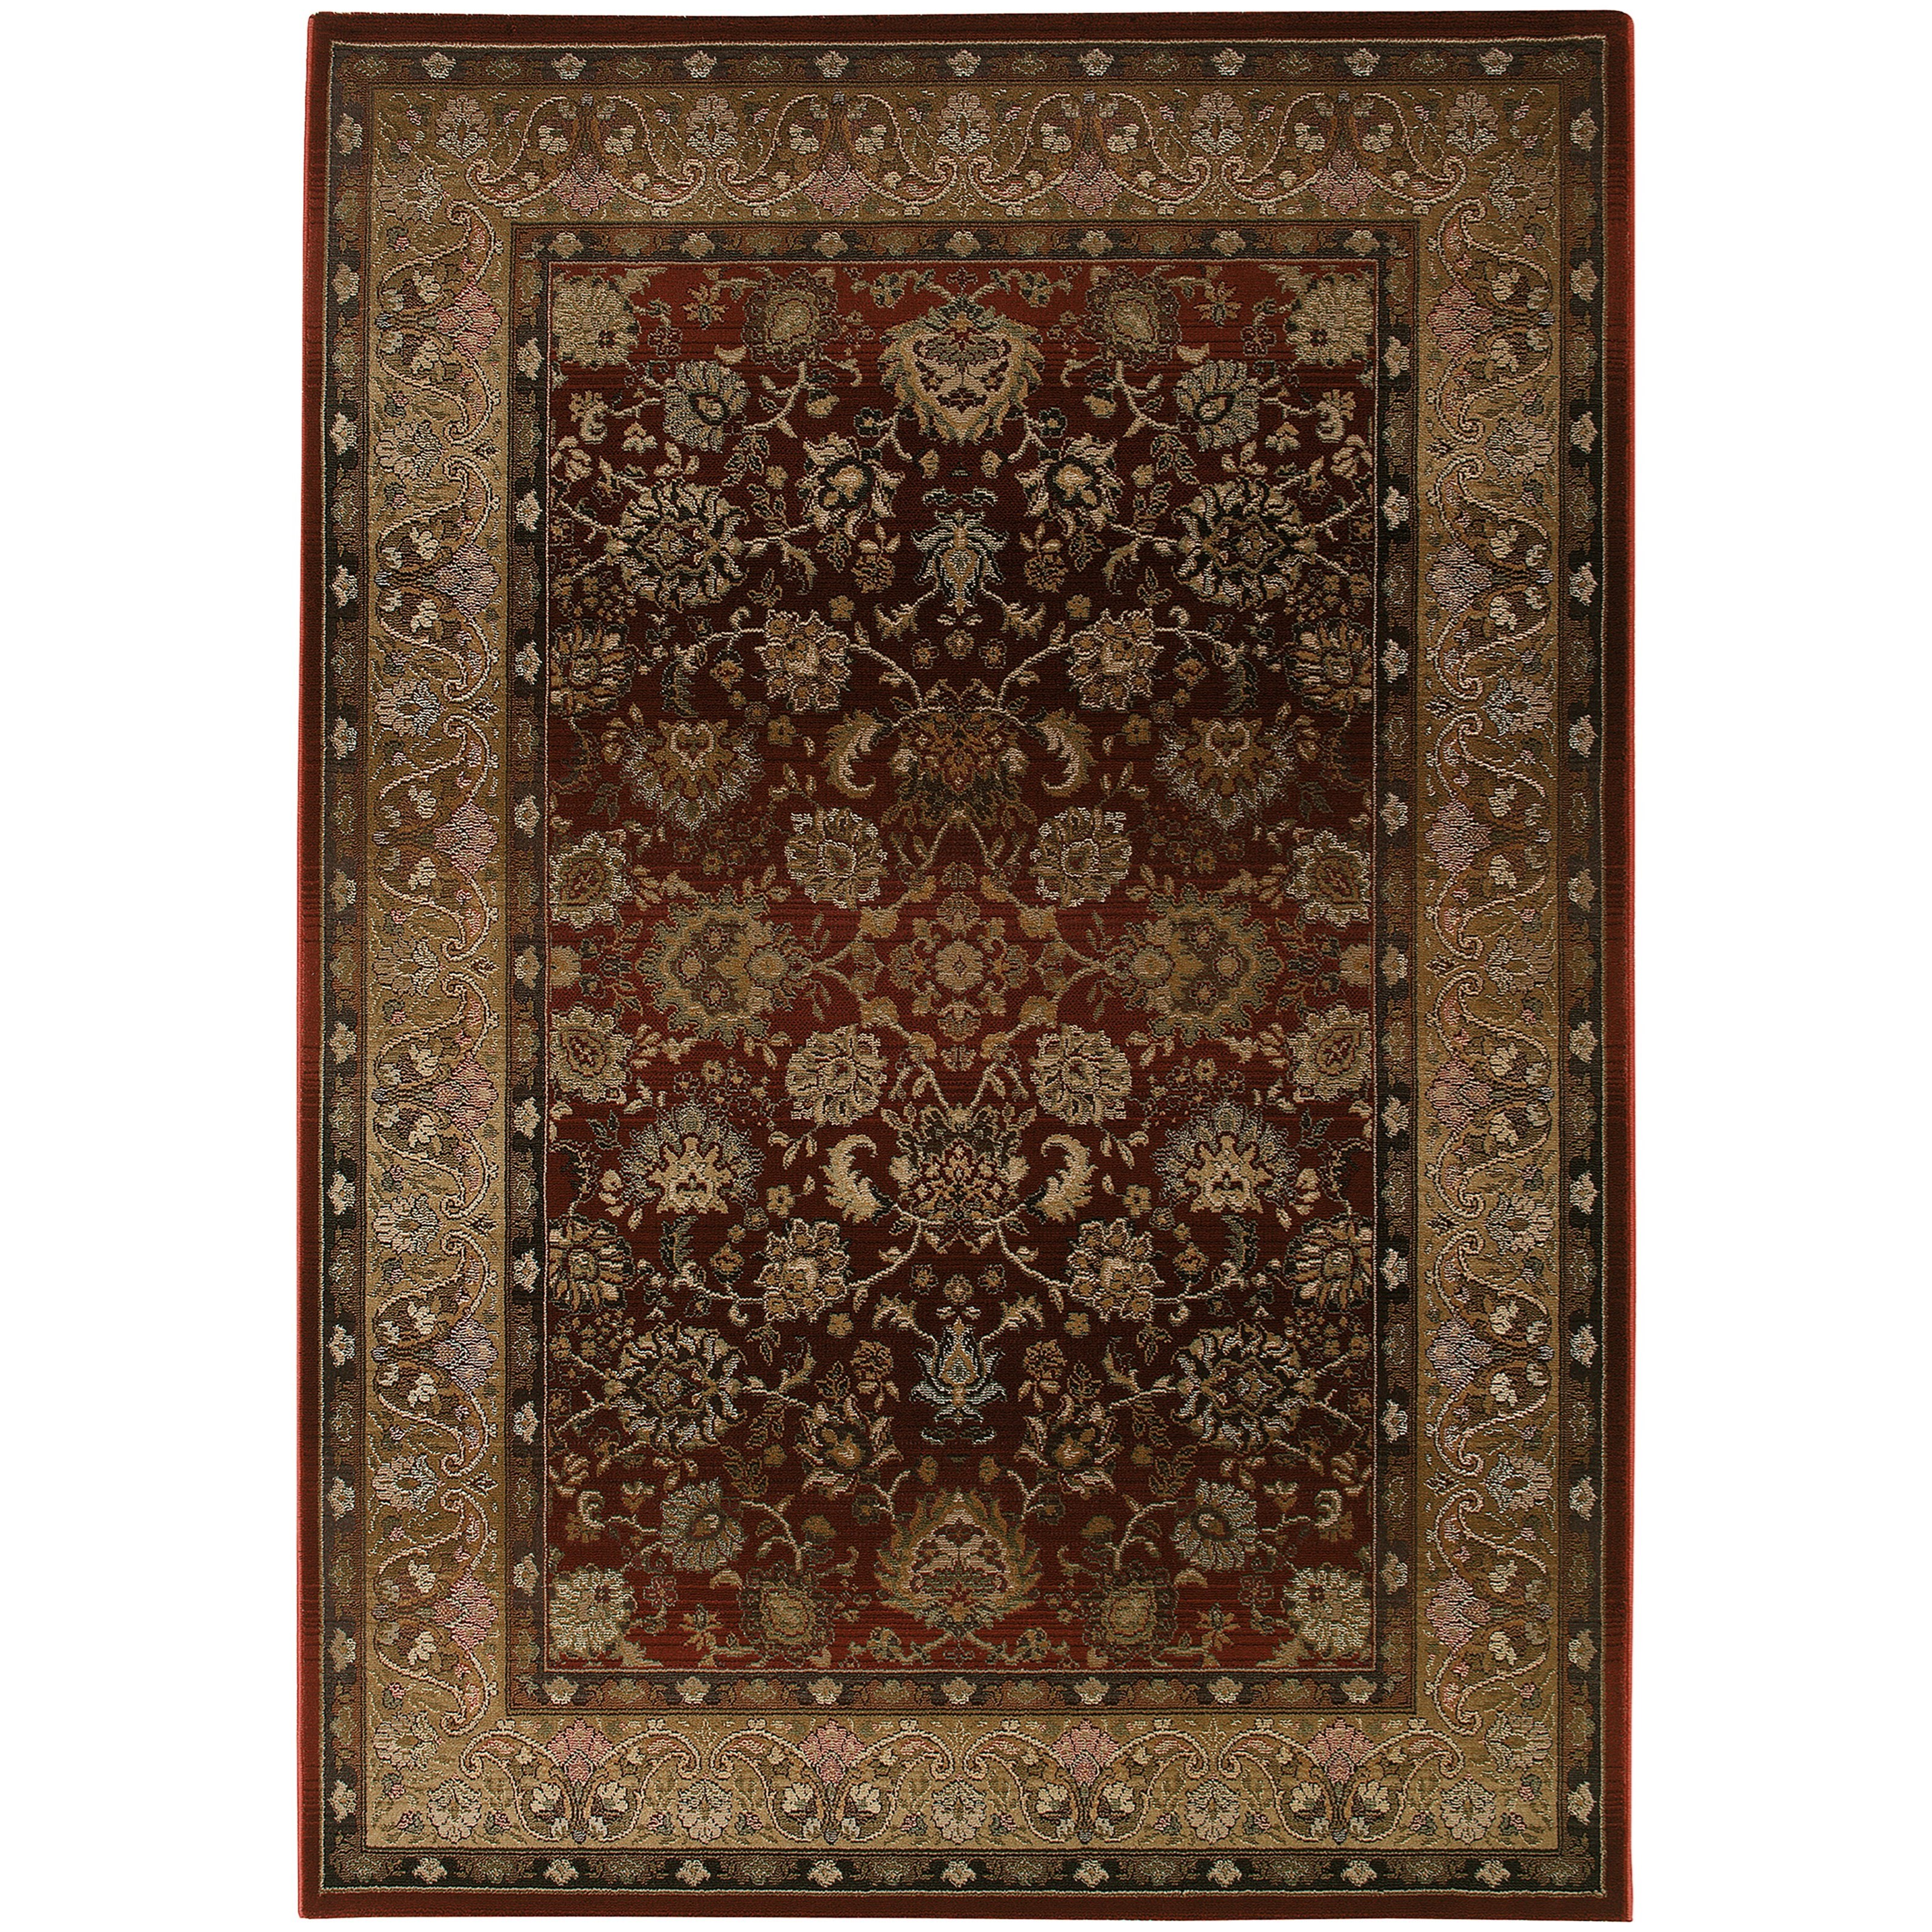 Generations 8' Traditional Red/ Beige Square Rug by Oriental Weavers at Steger's Furniture